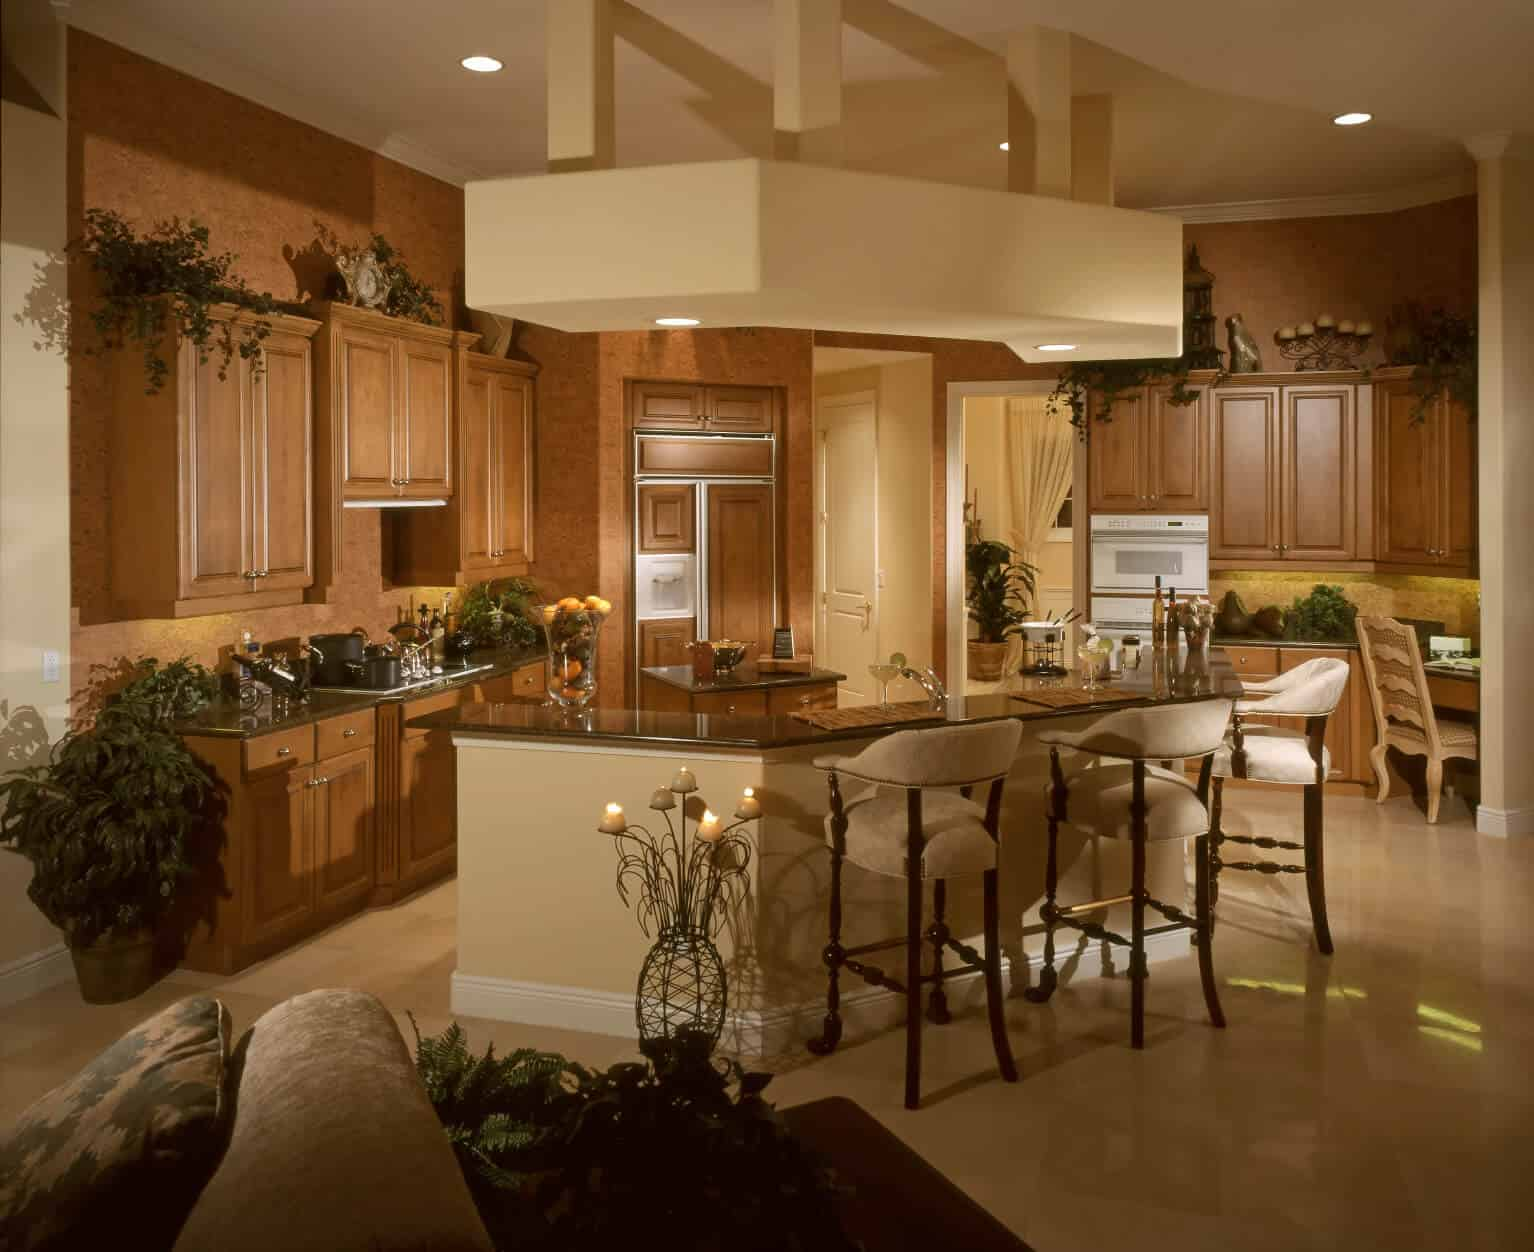 kitchen island designs with seating open in small apartments 90 different ideas and photos natural tones throughout this space c shape complete dining